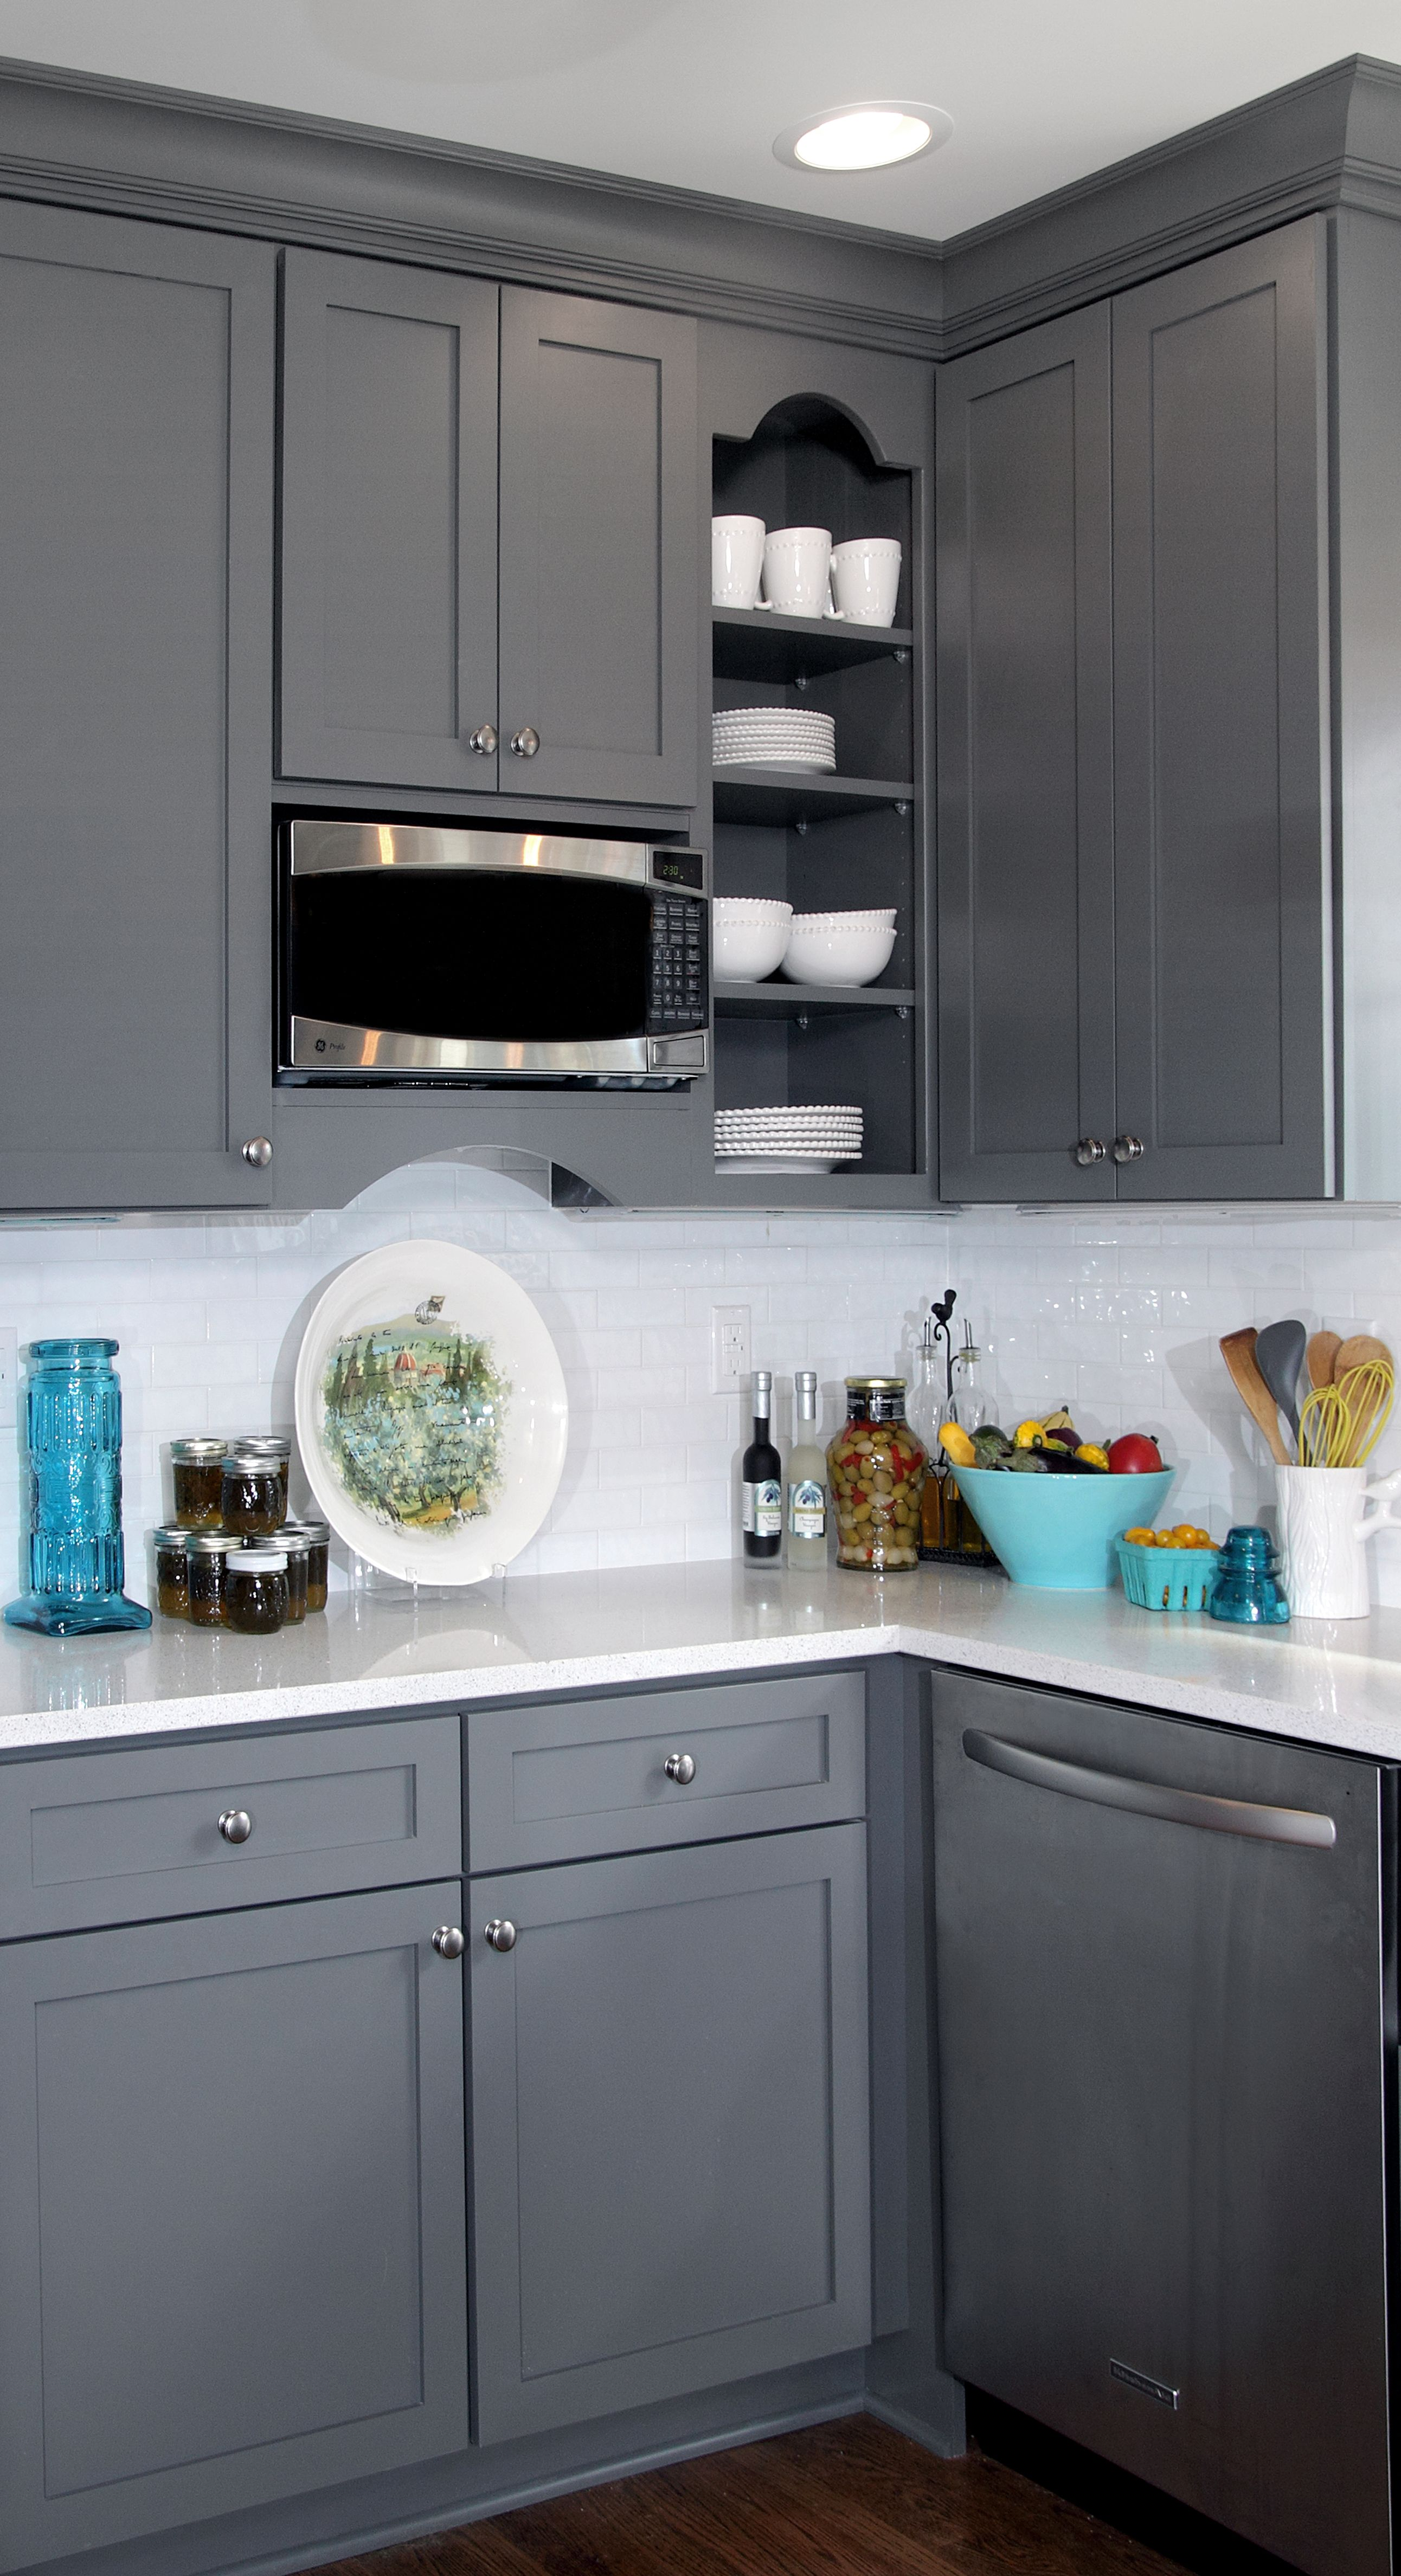 Gray and white transitional kitchen design with teal blue and yellow